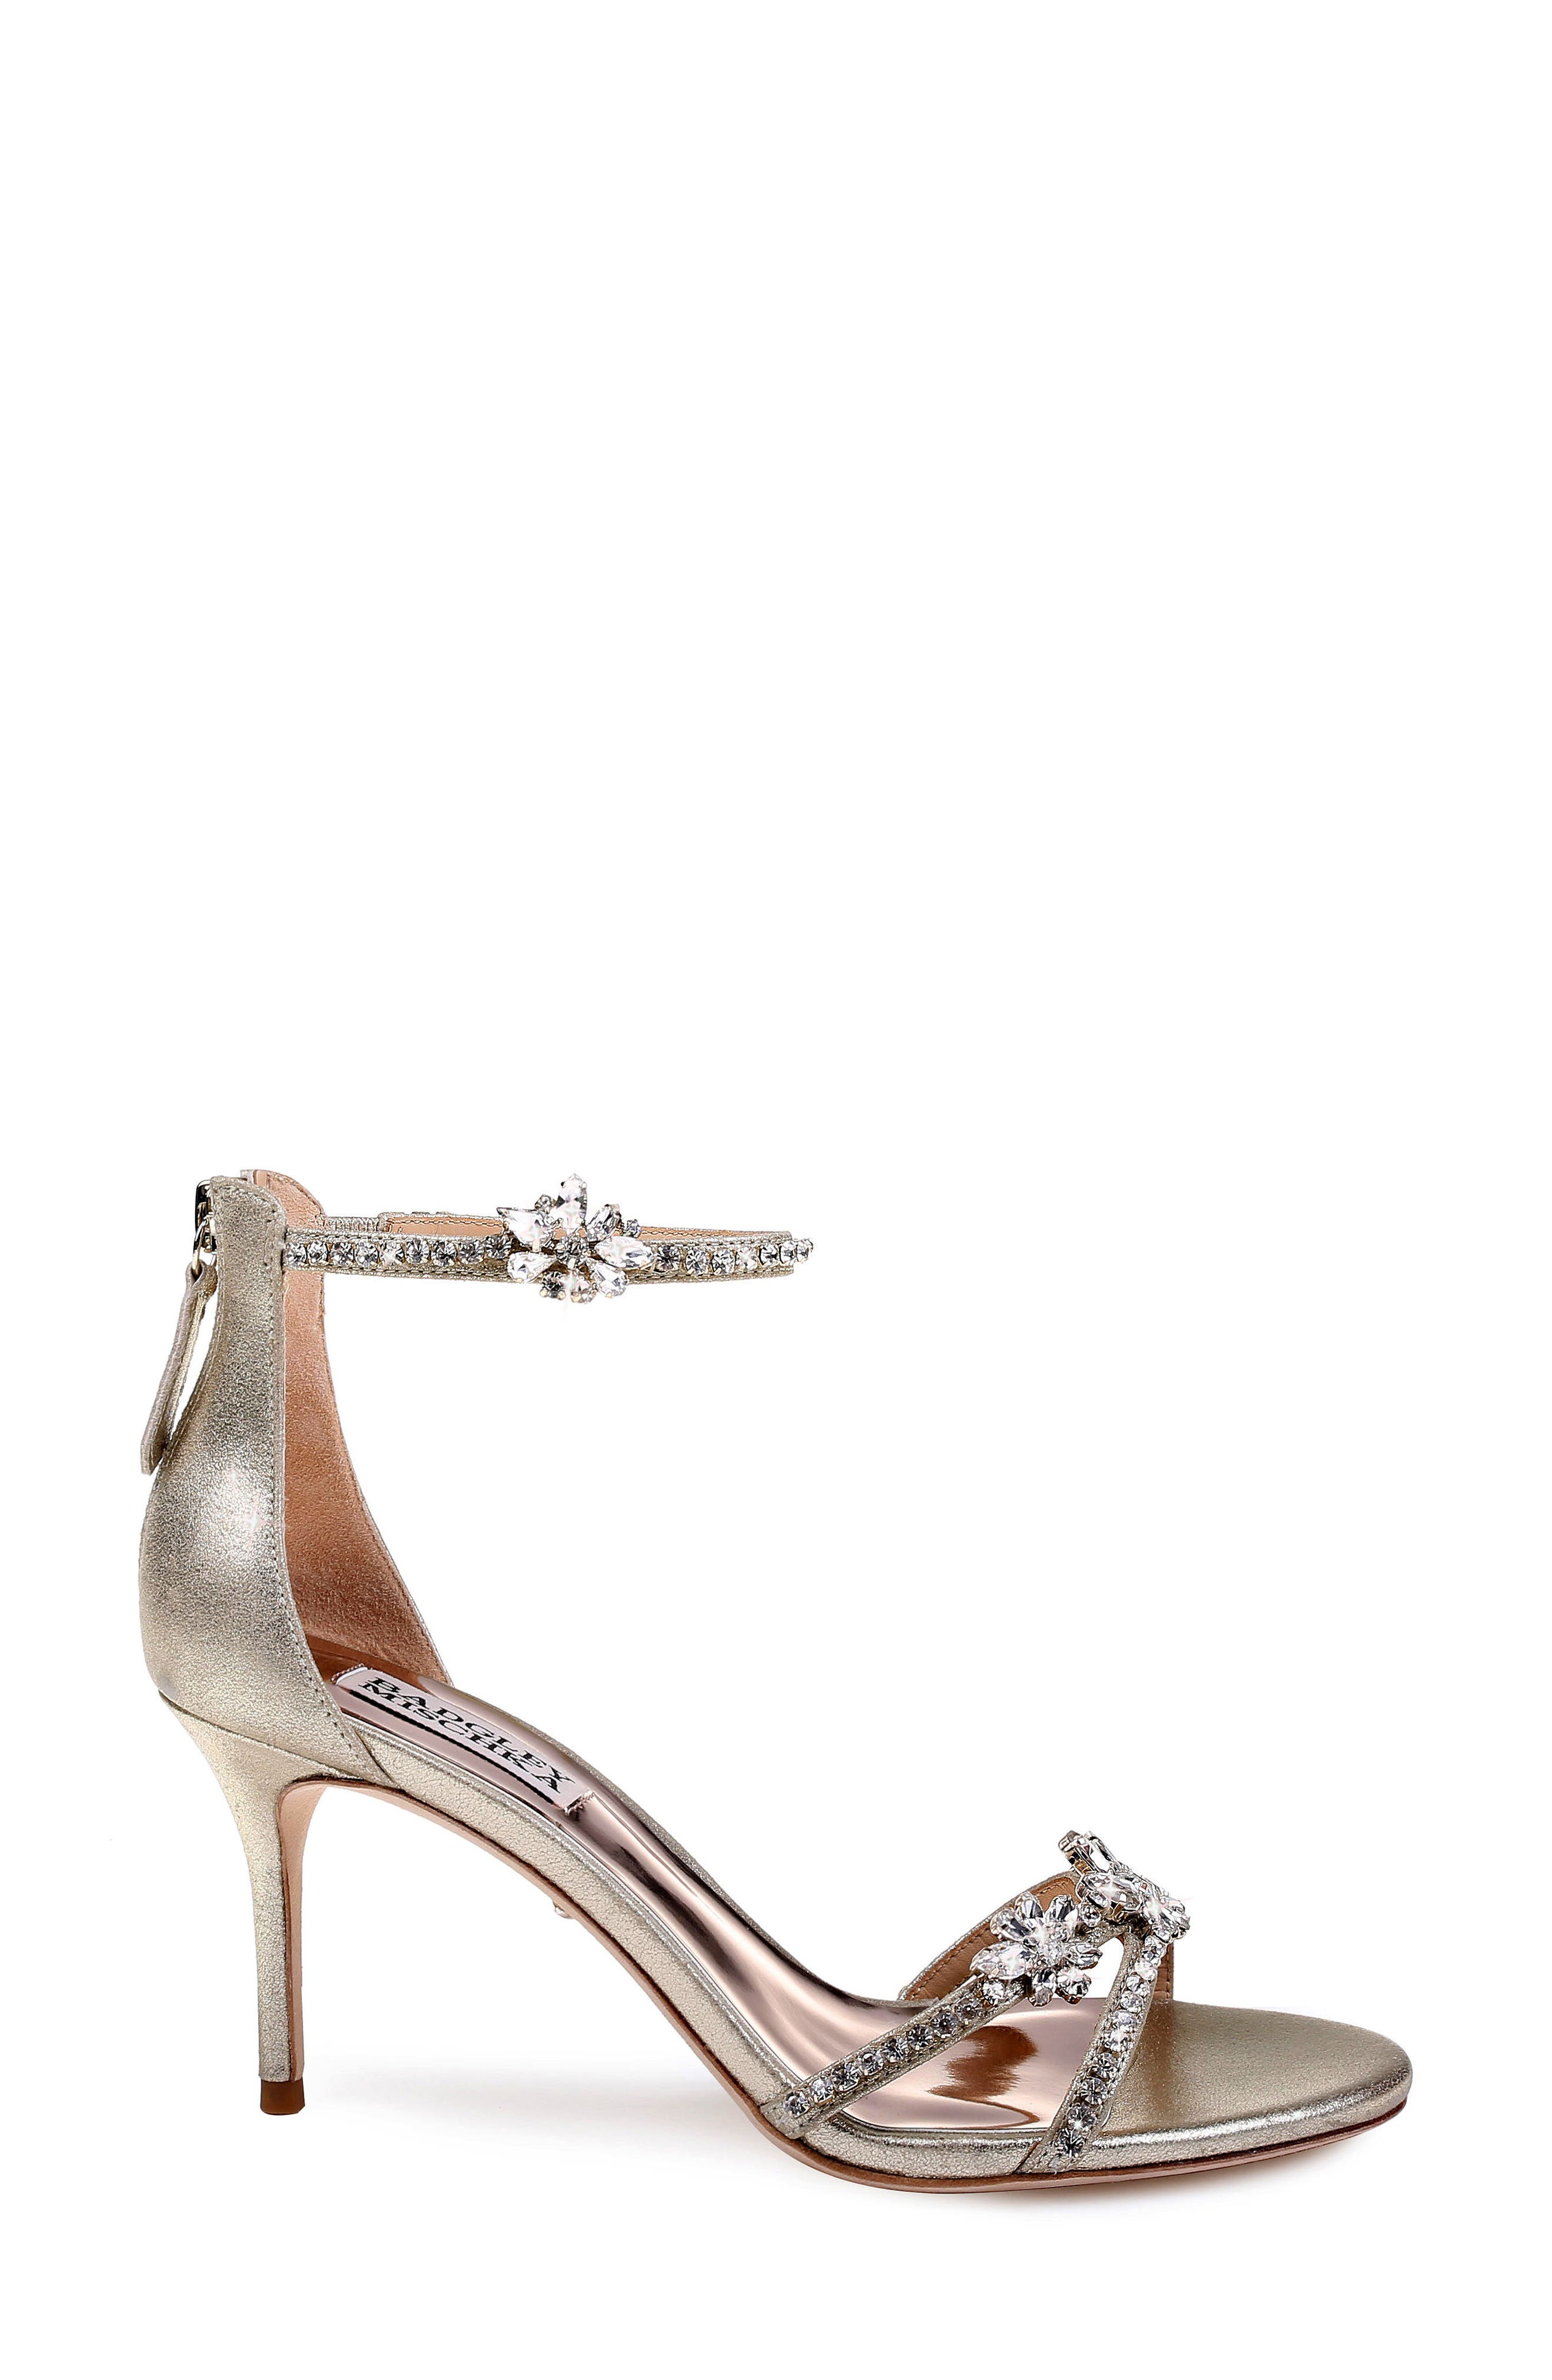 BADGLEY MISCHKA COLLECTION,                             Badgley Mischka Hobbs Ankle Strap Sandal,                             Alternate thumbnail 3, color,                             040